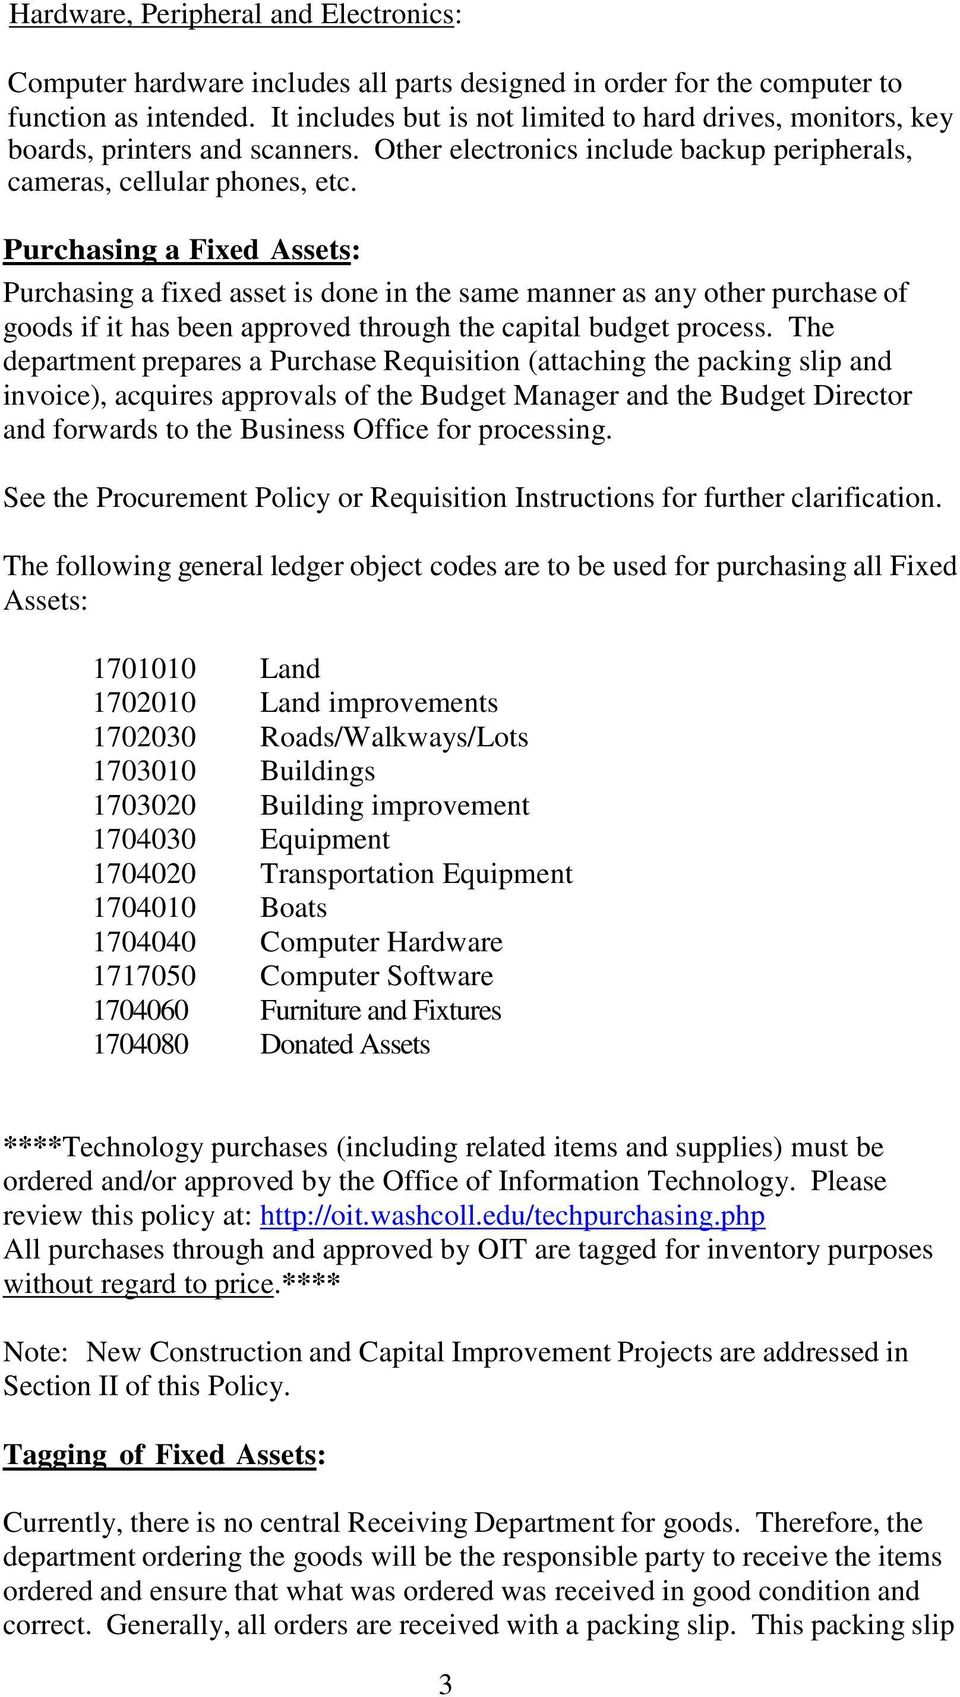 Purchasing a Fixed Assets: Purchasing a fixed asset is done in the same manner as any other purchase of goods if it has been approved through the capital budget process.